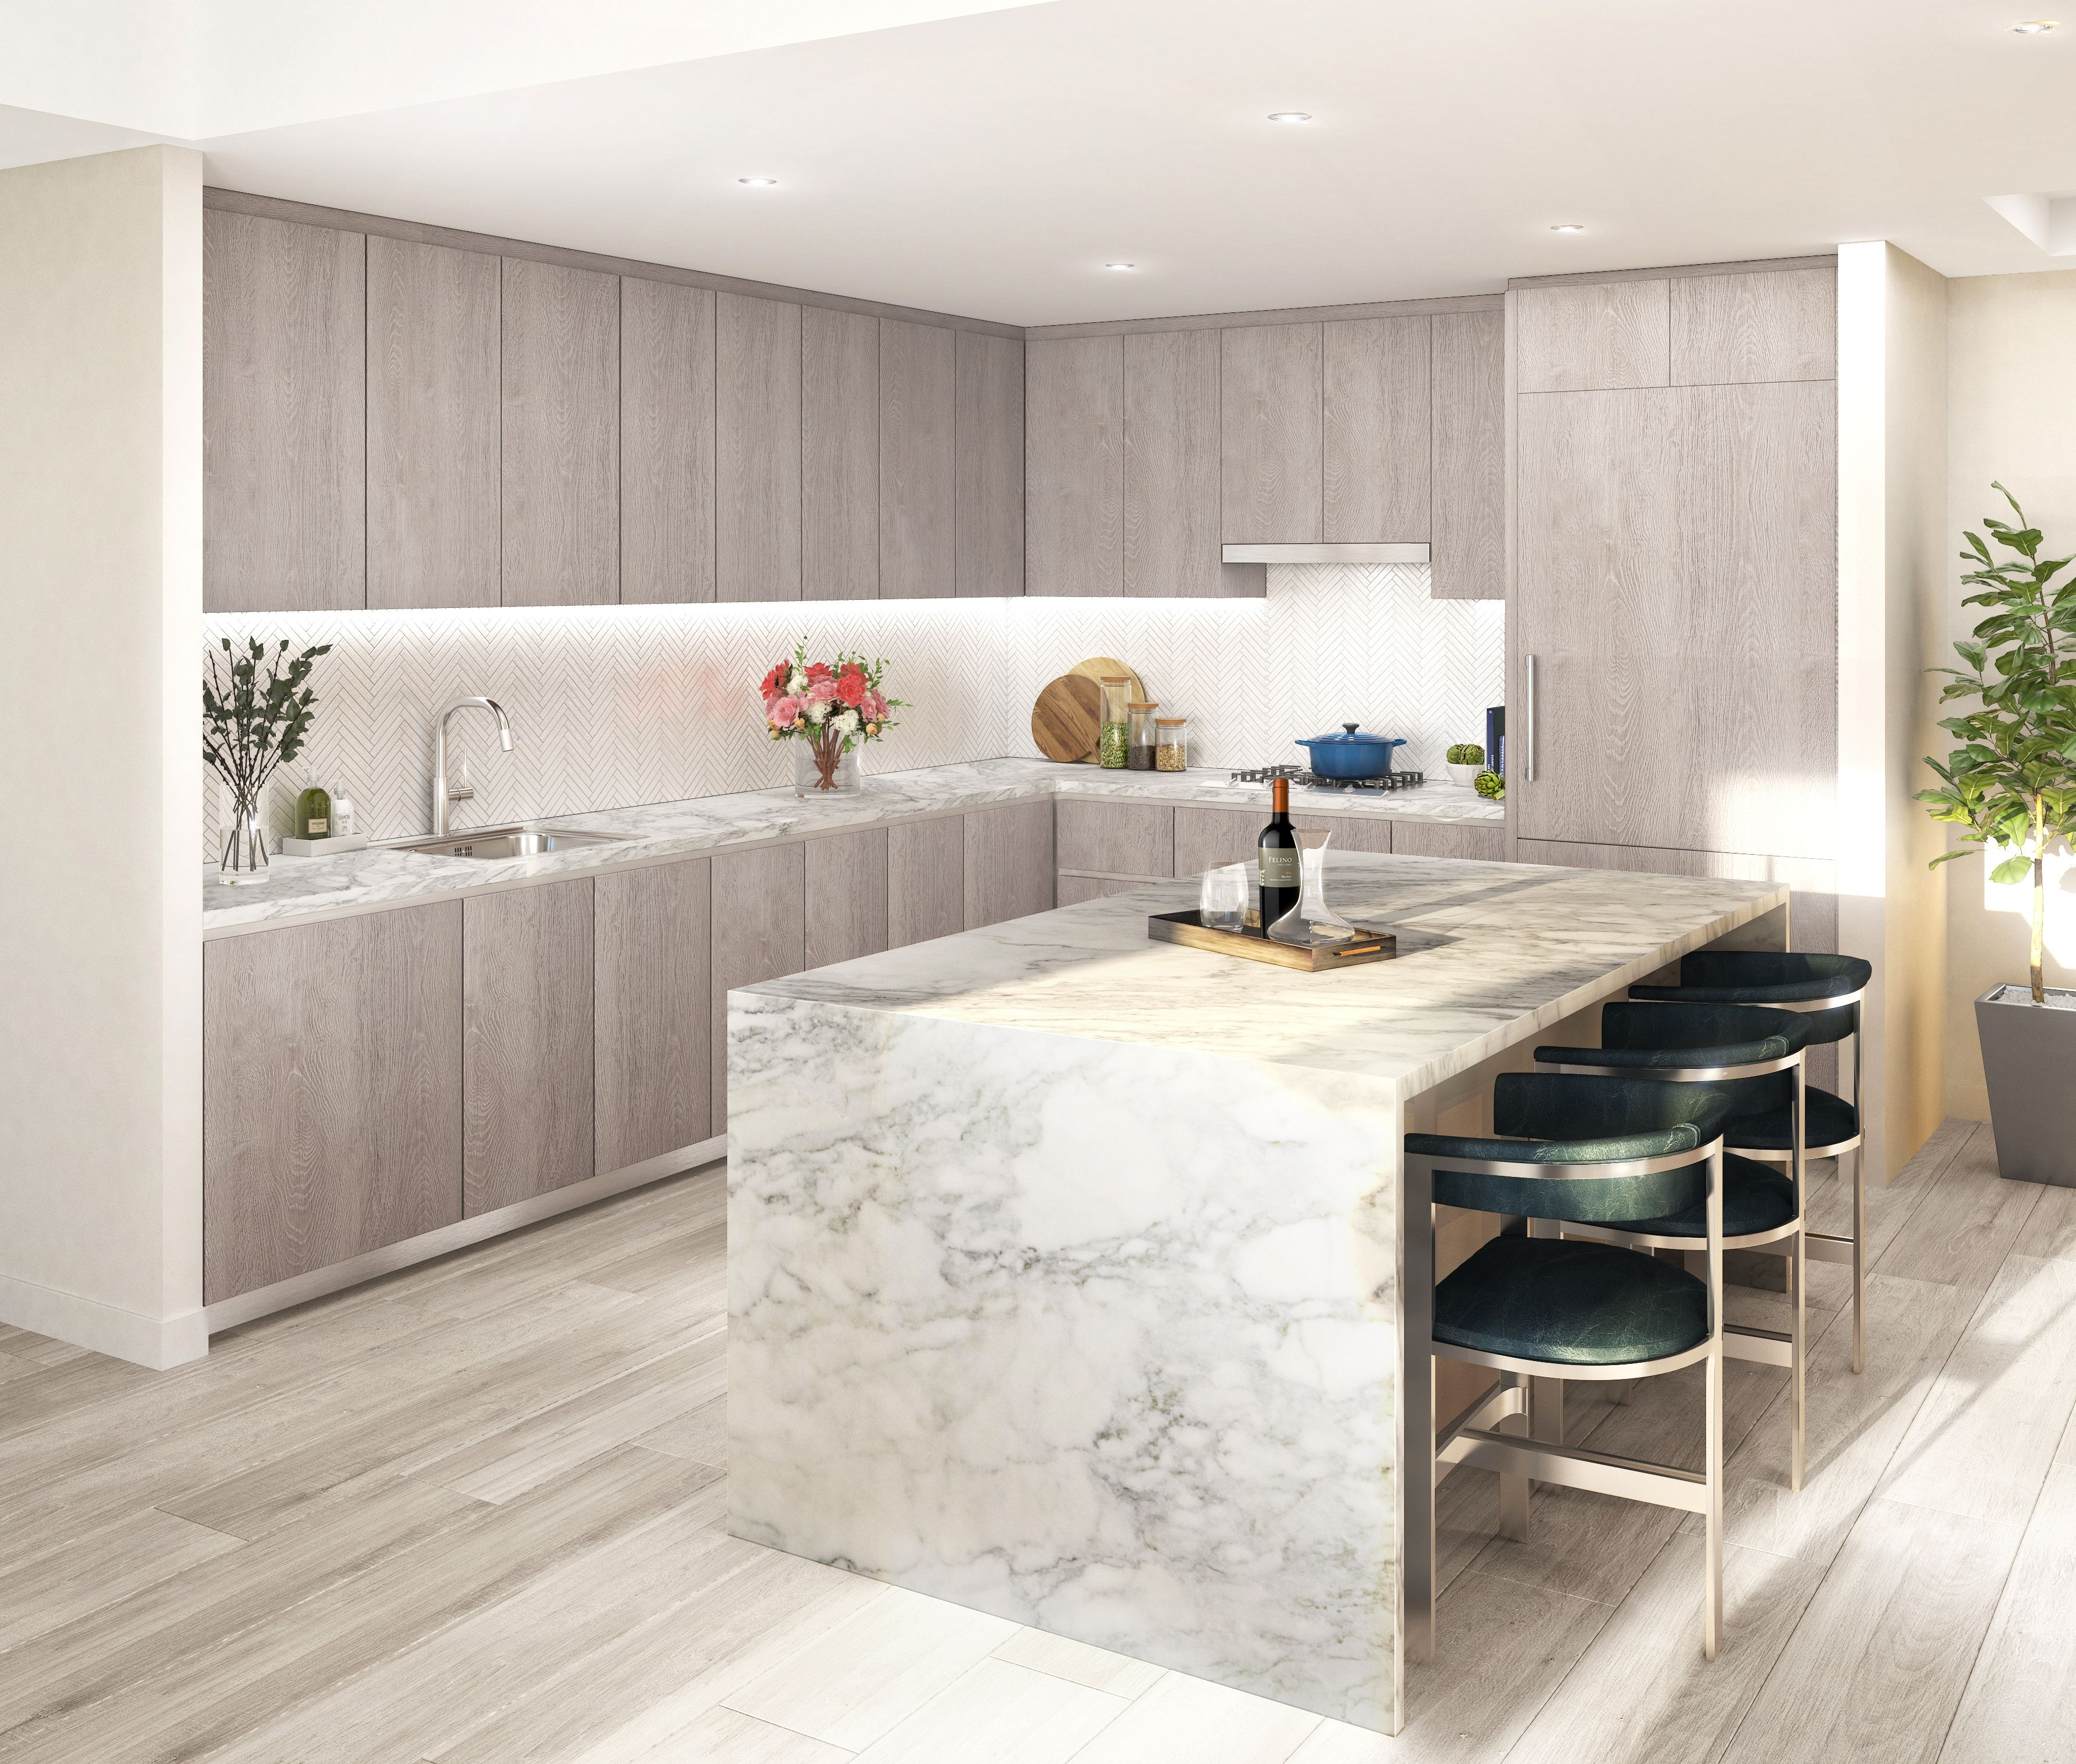 Kitchen featured in the Residence C8 By MUSE in Washington, VA